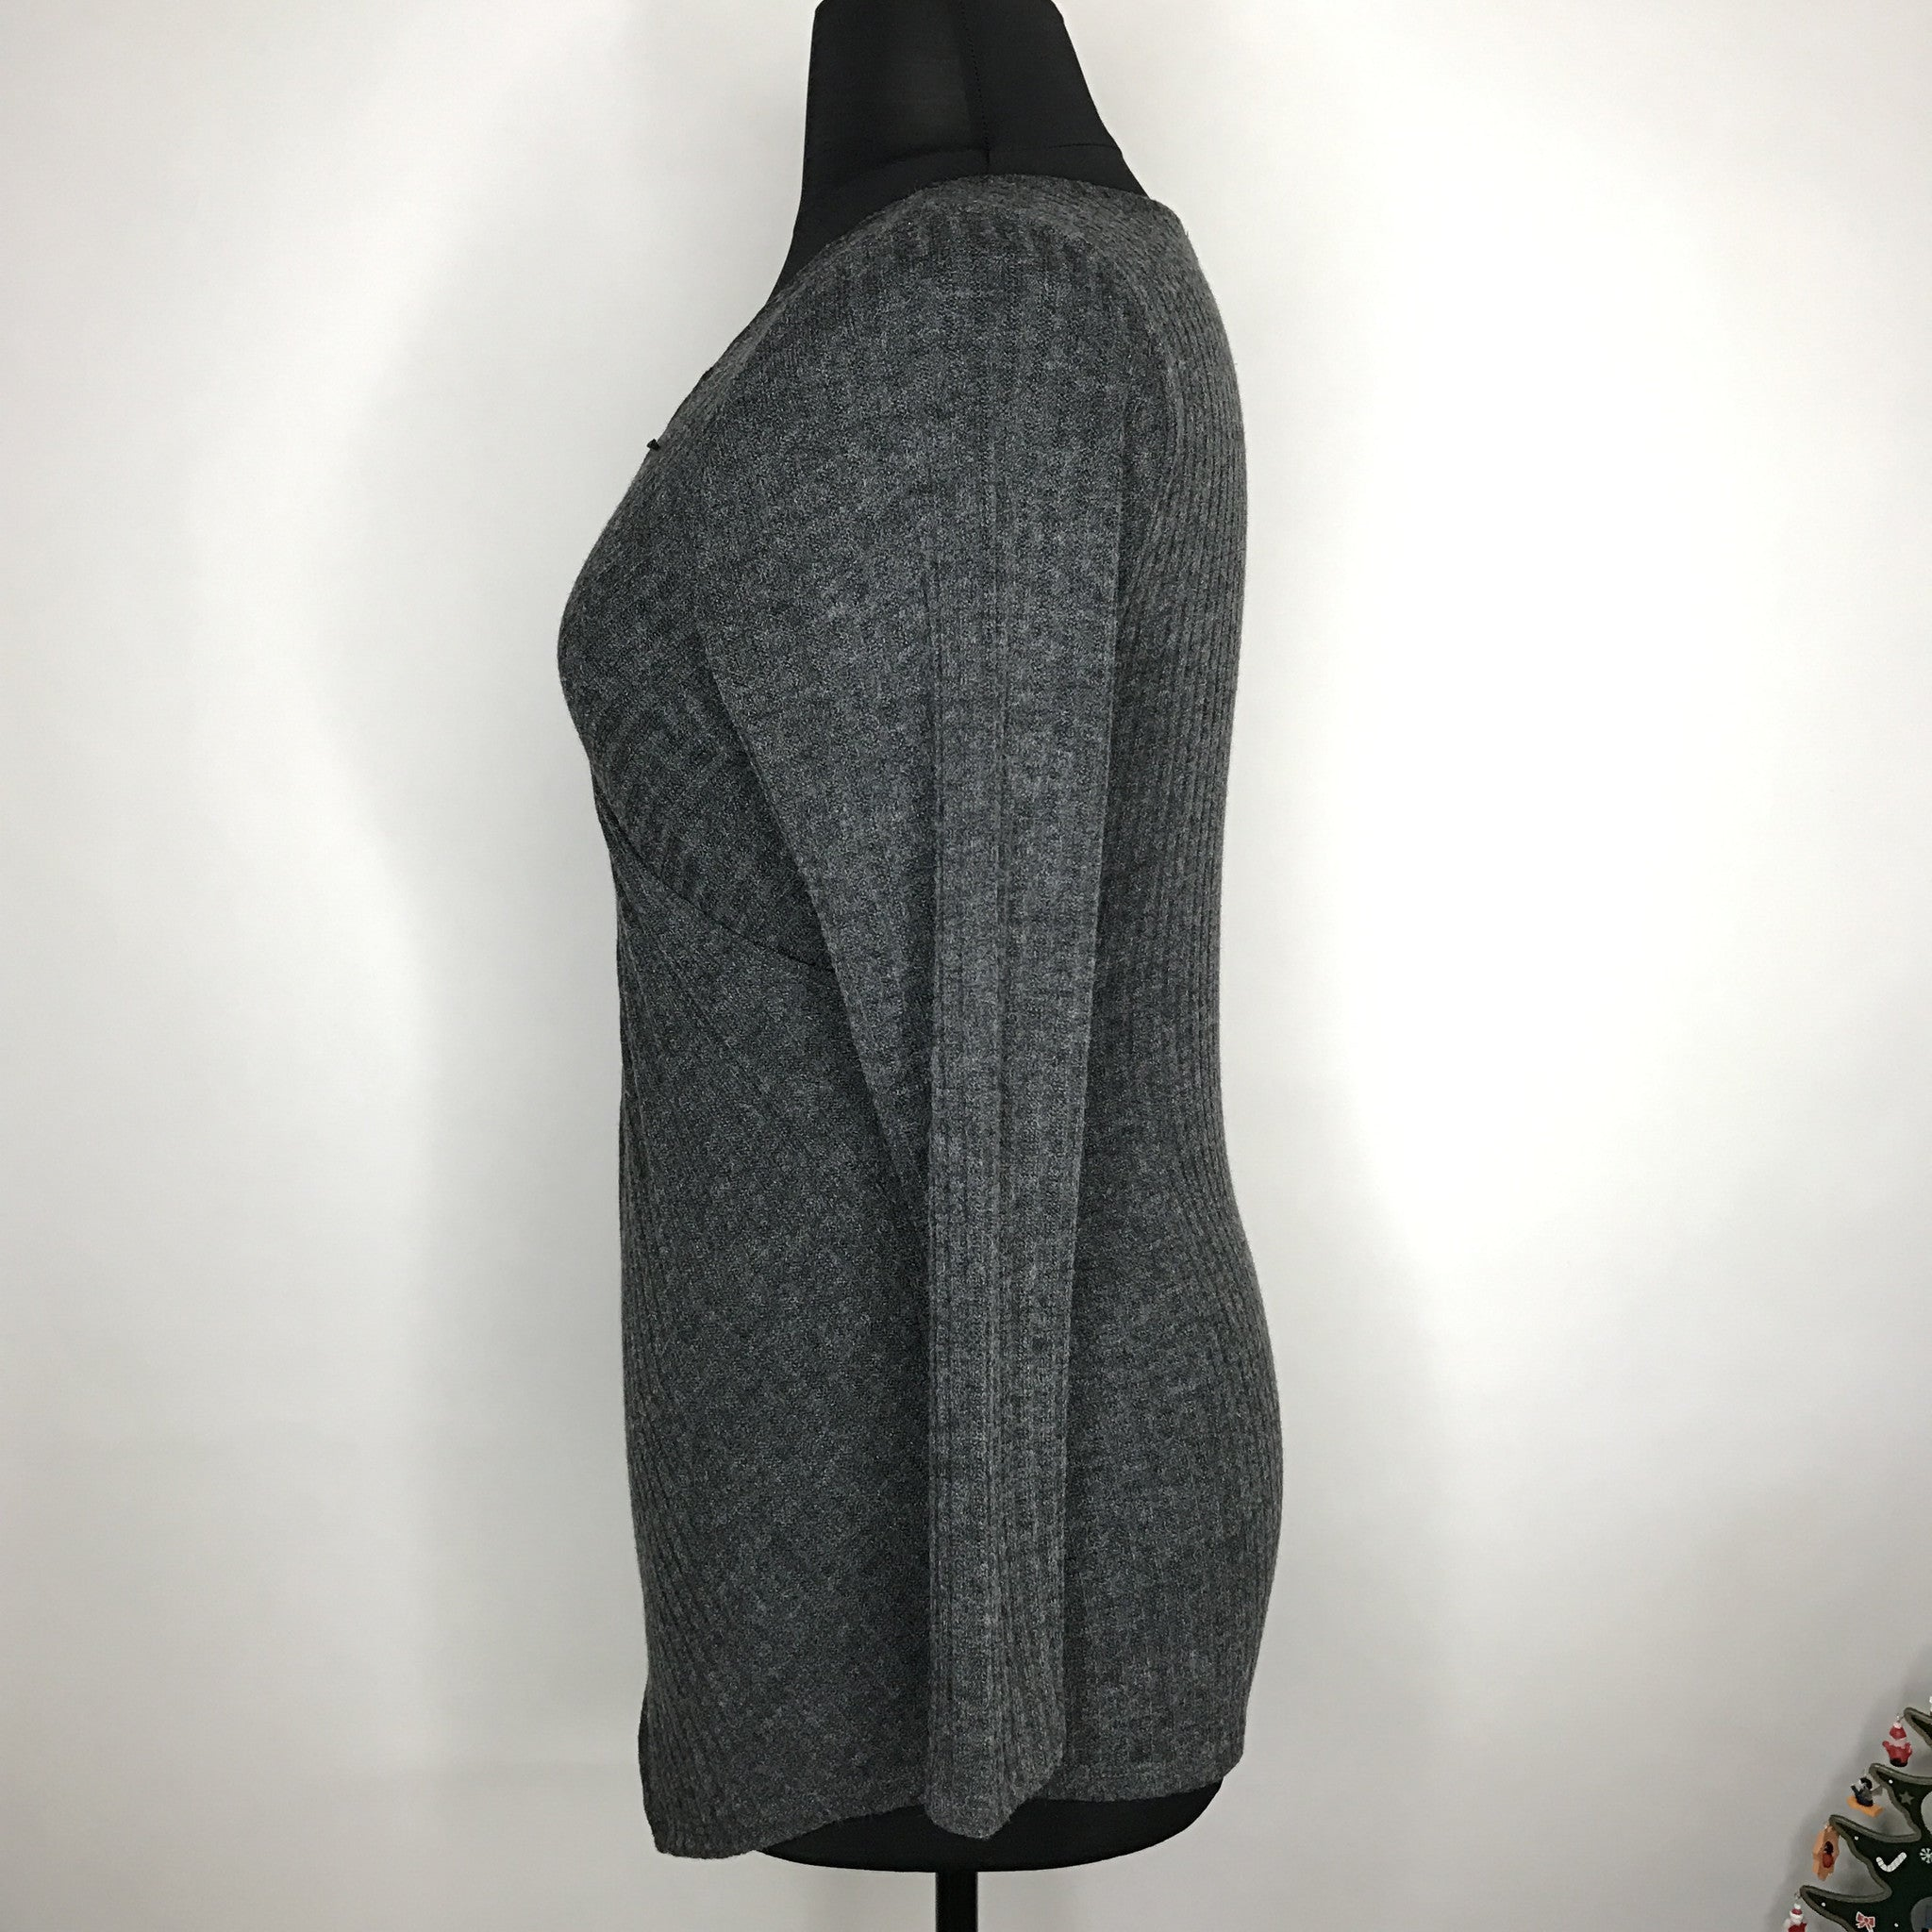 sweater in front aqua cashmere cardigan black drapes gallery normal clothing product drape lyst